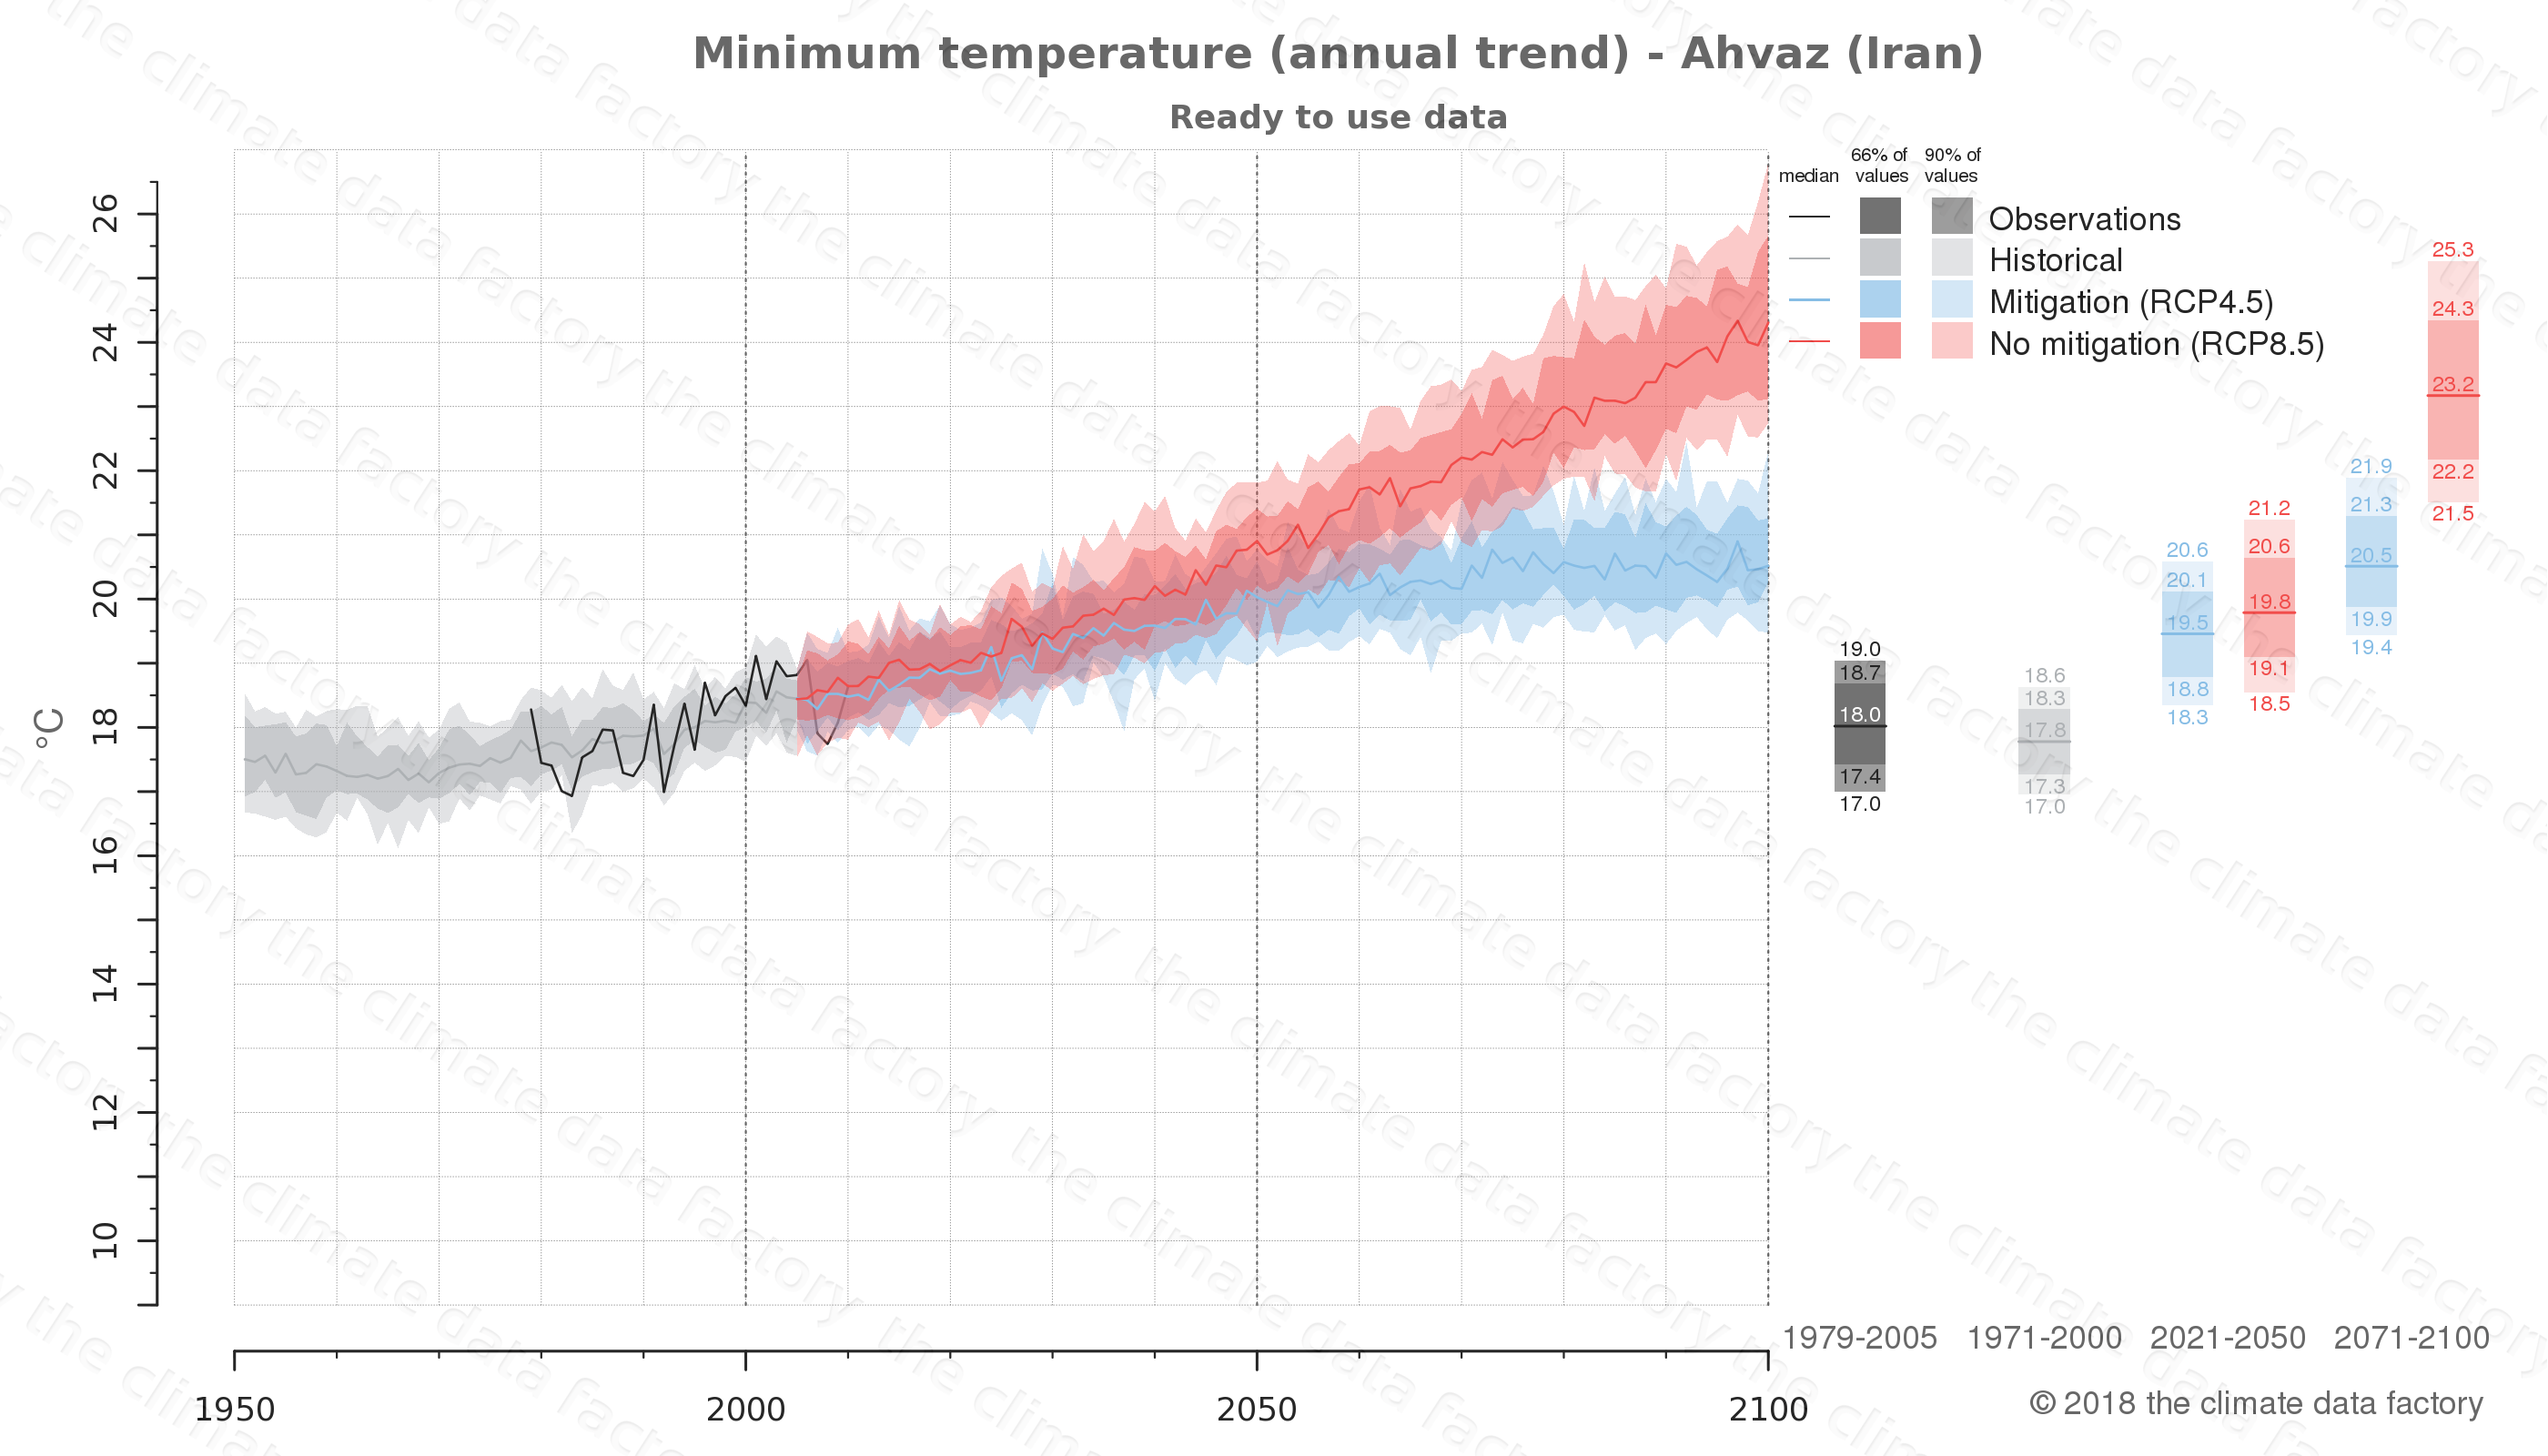 climate change data policy adaptation climate graph city data minimum-temperature ahvaz iran